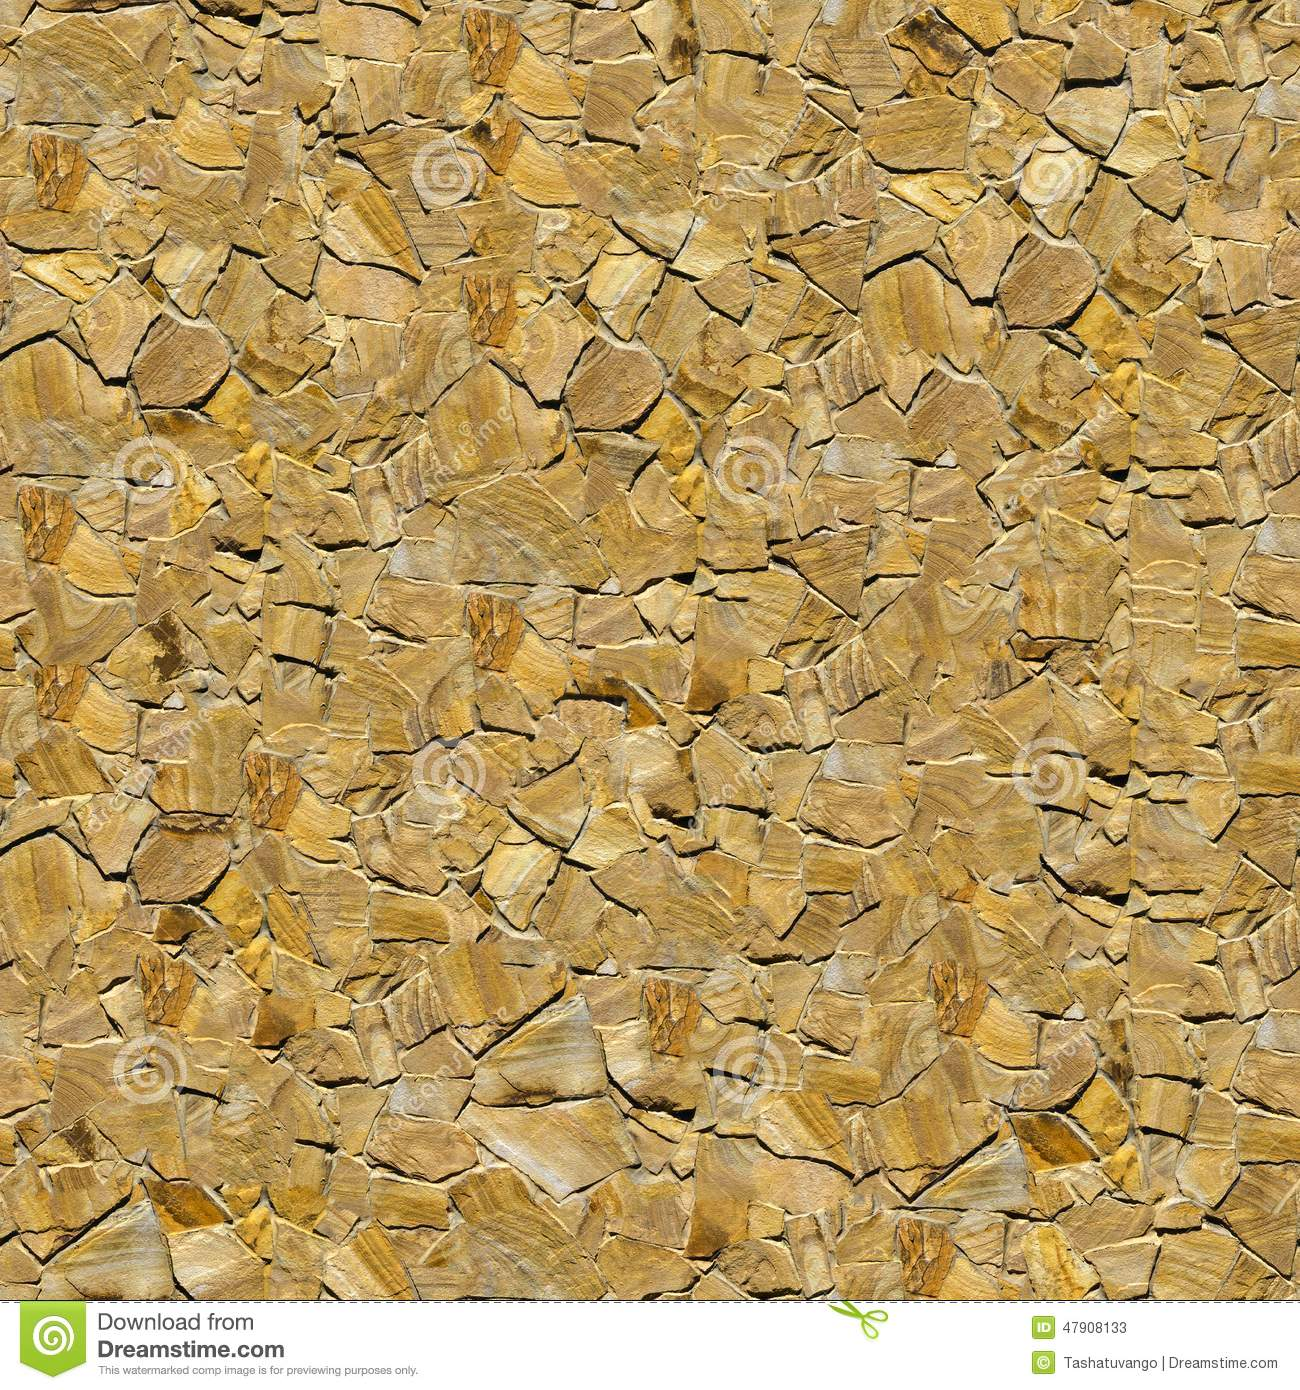 Decorative Sandstone Wall. Seamless Texture. Stock Image - Image of ...